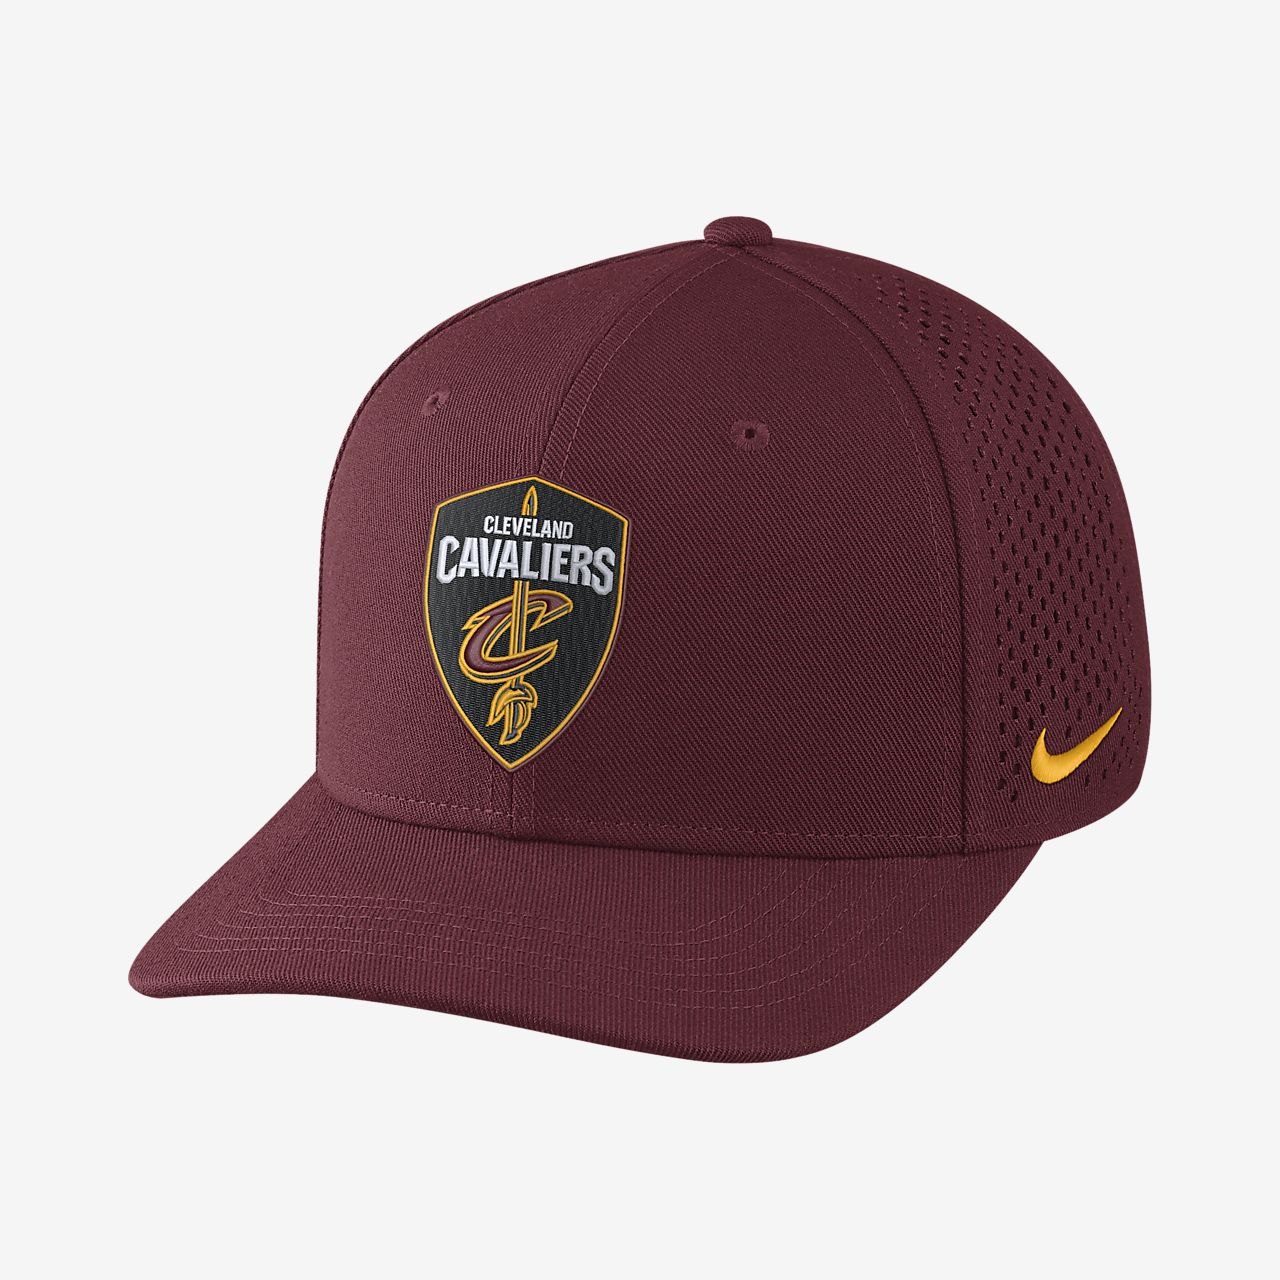 63669e45ce8 Unisex Adjustable NBA Hat. Cleveland Cavaliers Nike AeroBill Classic99